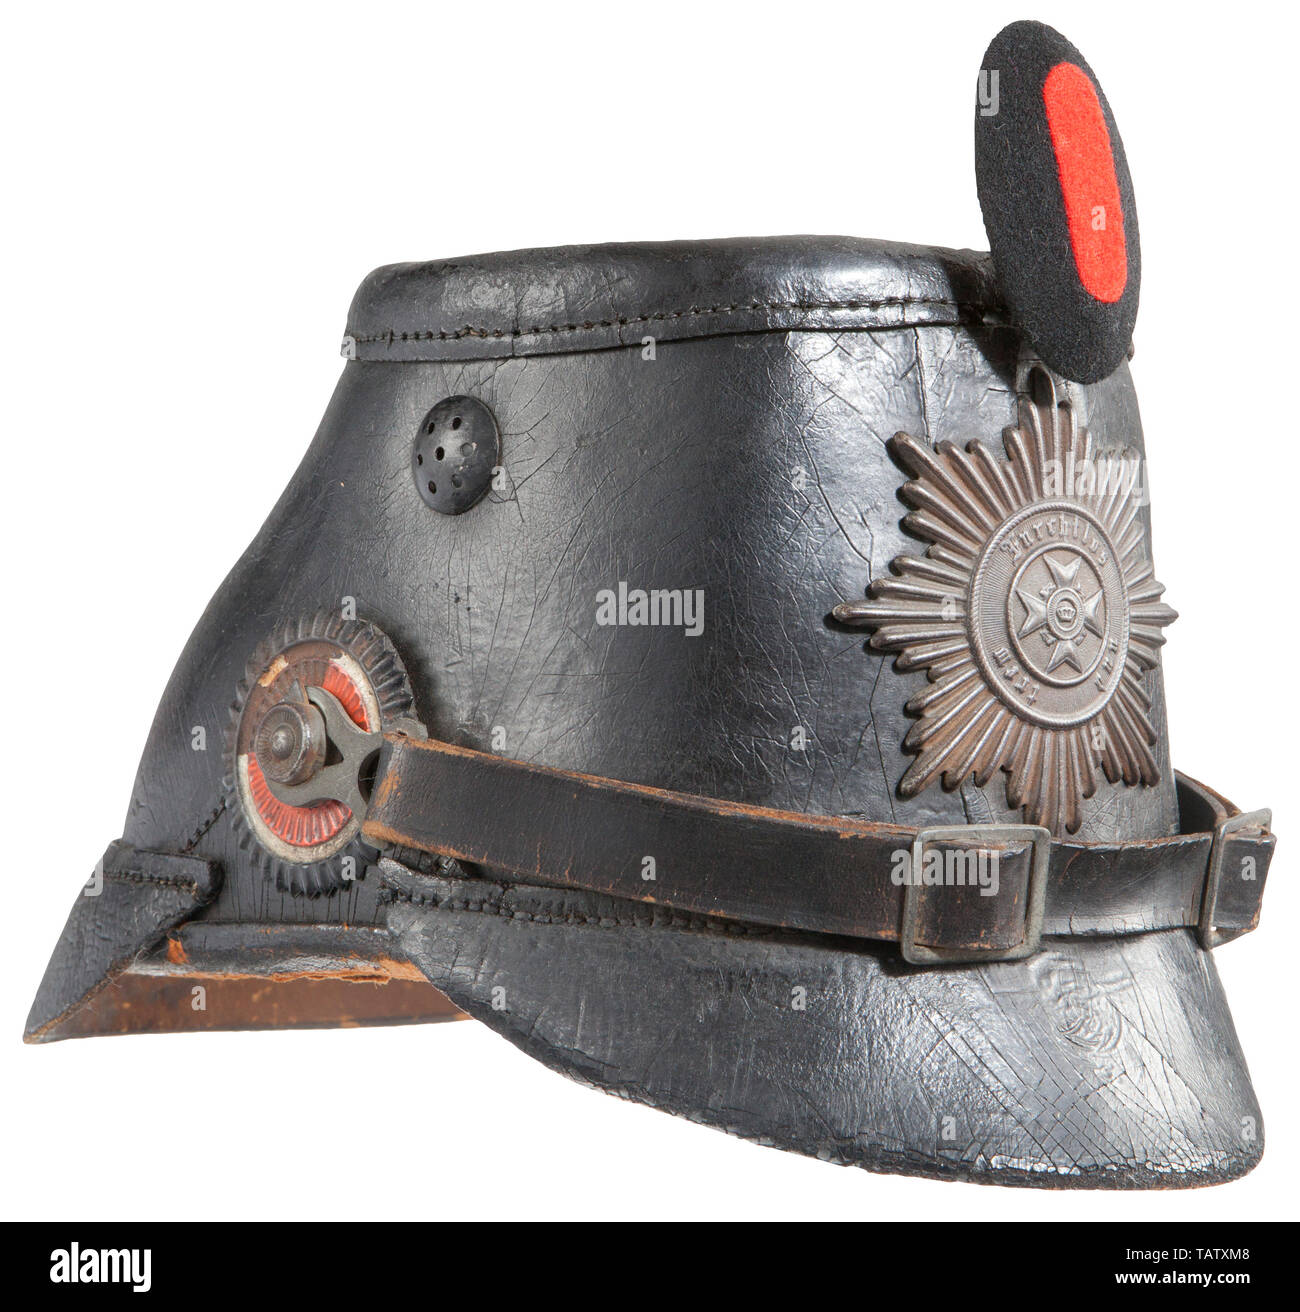 IMPERIAL GERMANY UNTIL 1914, An imperial German Württemberg mountain troops enlisted men's shako Black leather body, front and back visors have some crazing, front plate of Württemberg order attached by loops with leather inserts, red and black field badge (new), rusty national colours cockade, black leather chinstrap with grey buckles and M 91 lug side posts, tan leather liner (worn), very rare unit. CNN377, Additional-Rights-Clearance-Info-Not-Available - Stock Image